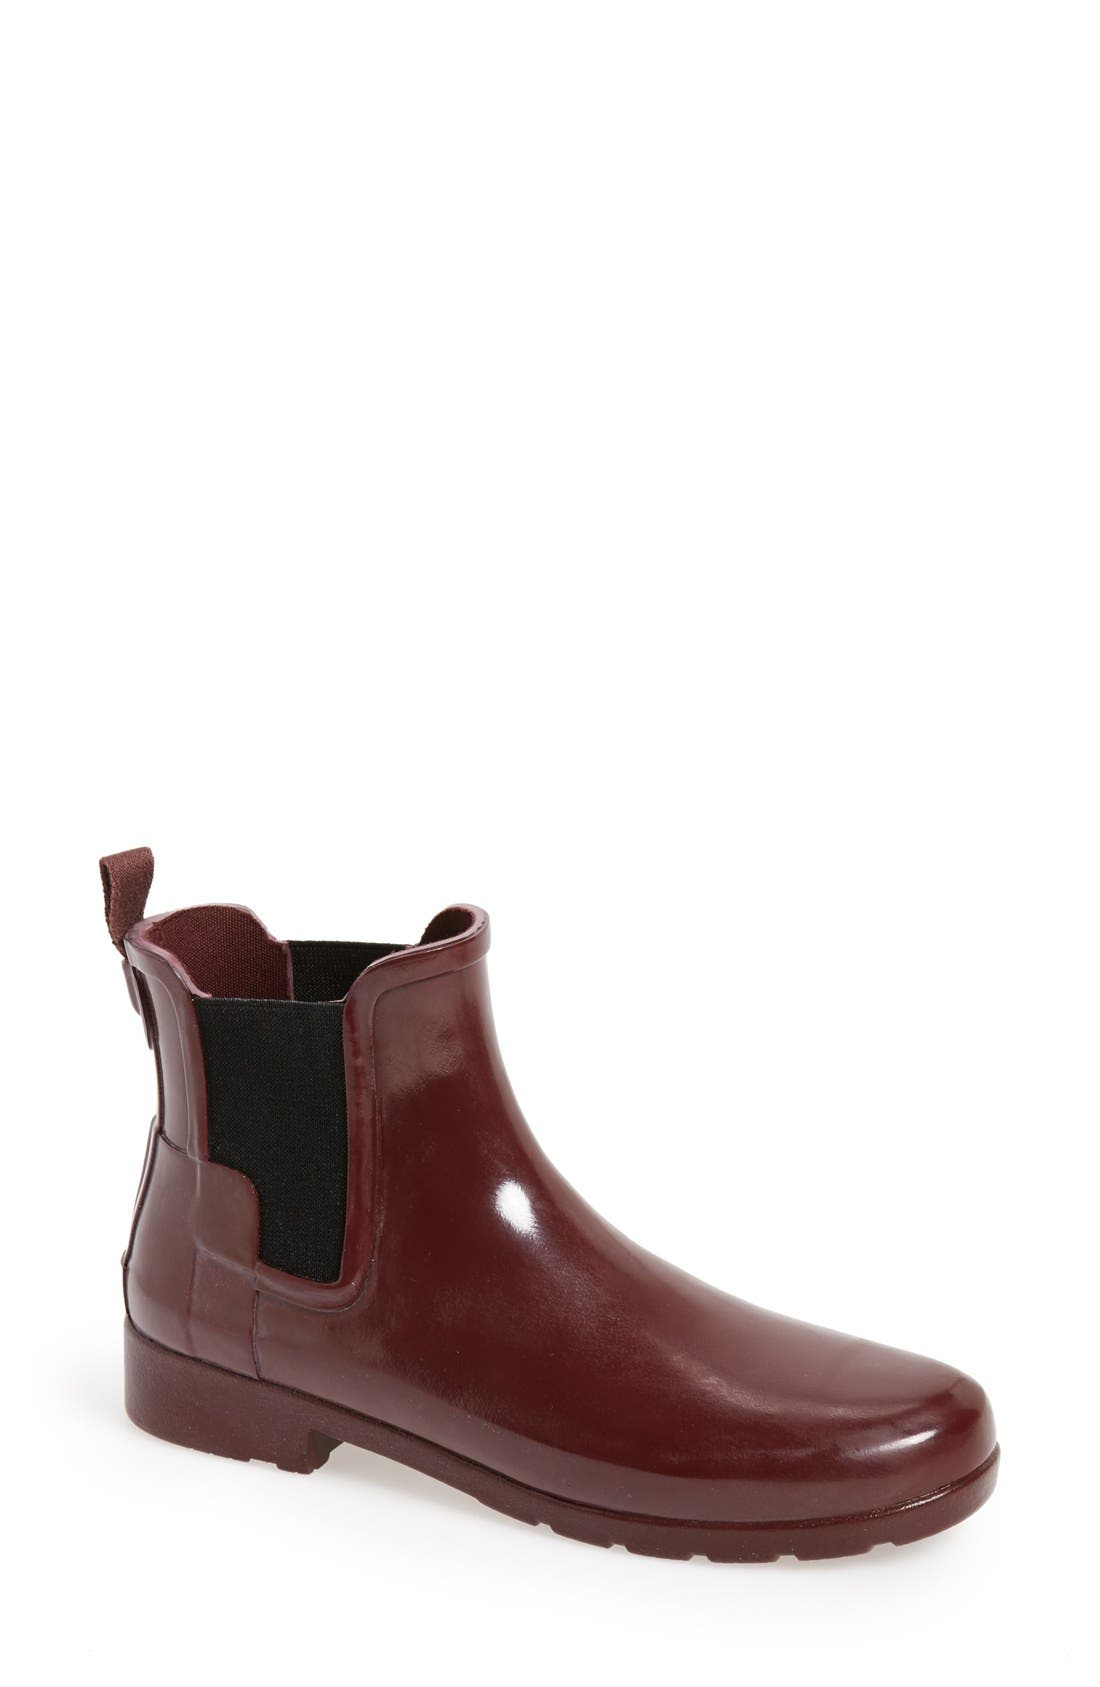 Main Image - Hunter 'Original Refined' Chelsea Rain Boot (Women)